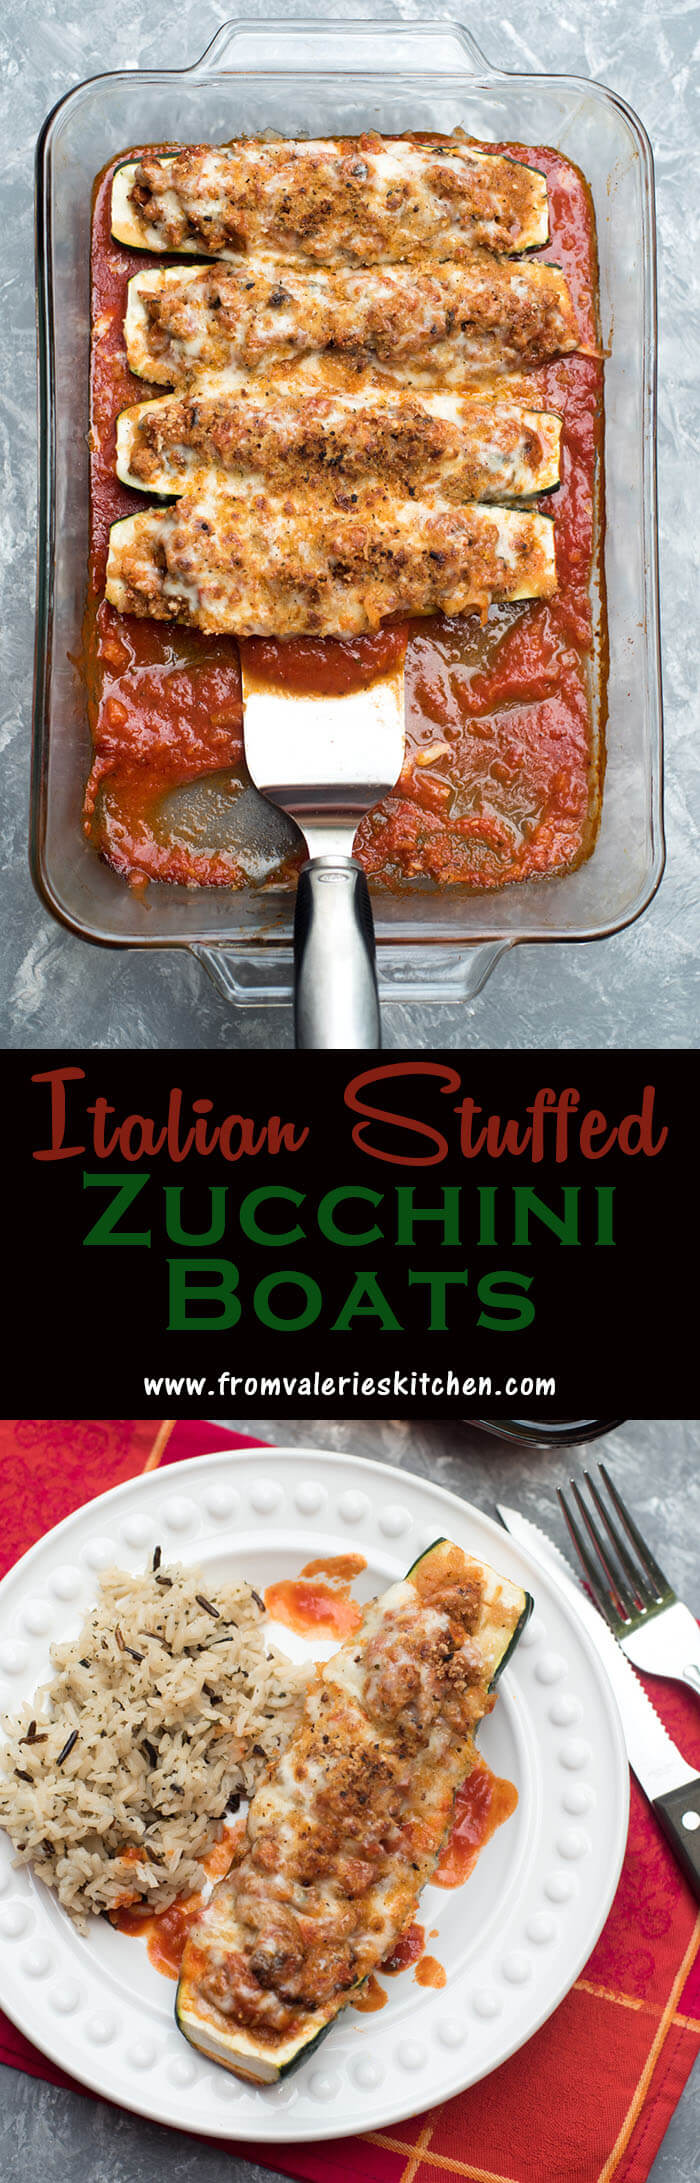 These low-carb Italian Stuffed Zucchini Boats are packed with flavor and nutrition! A lean turkey and veggie filling is topped